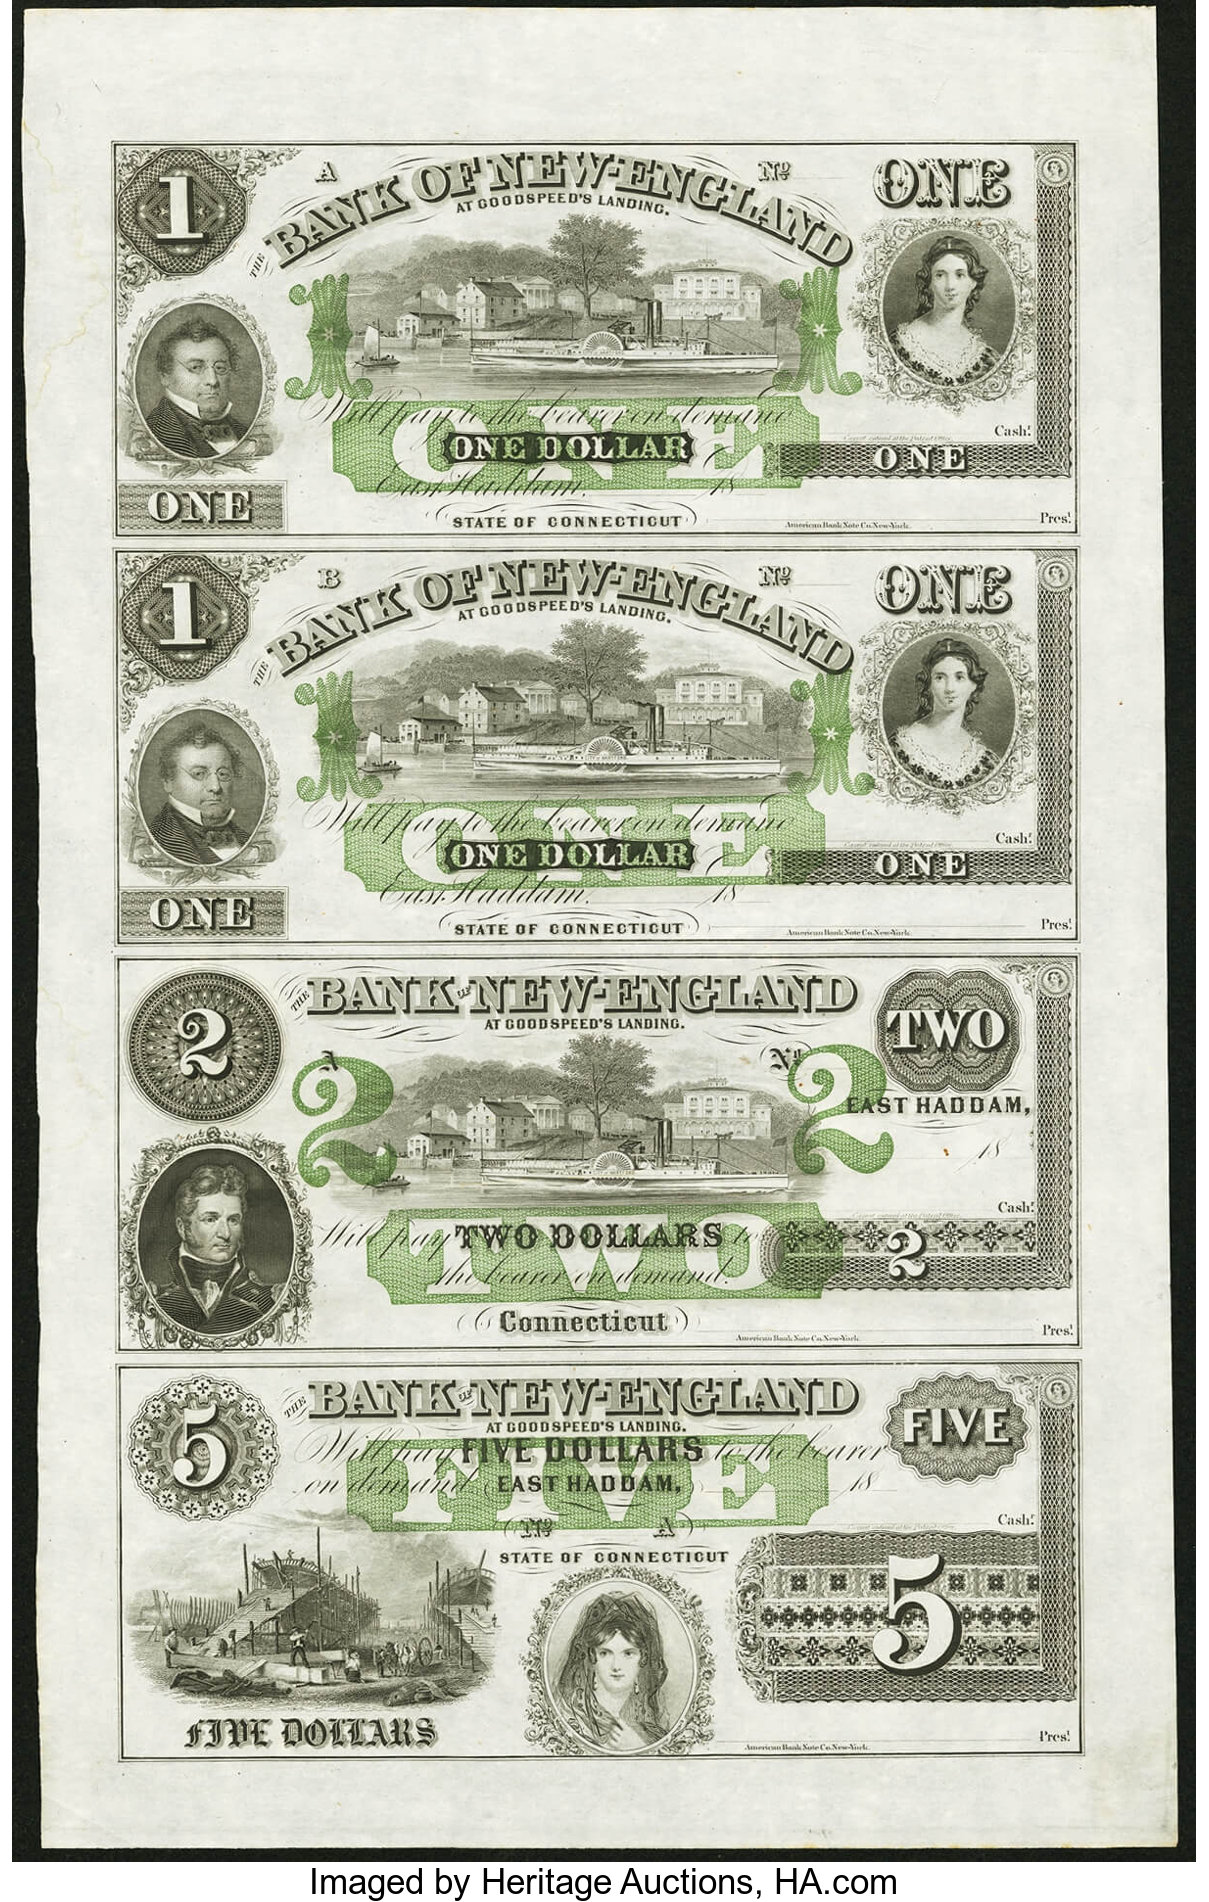 East Haddam CT Bank of New England $1-$1-$2-$5 1865 Uncut Sheet